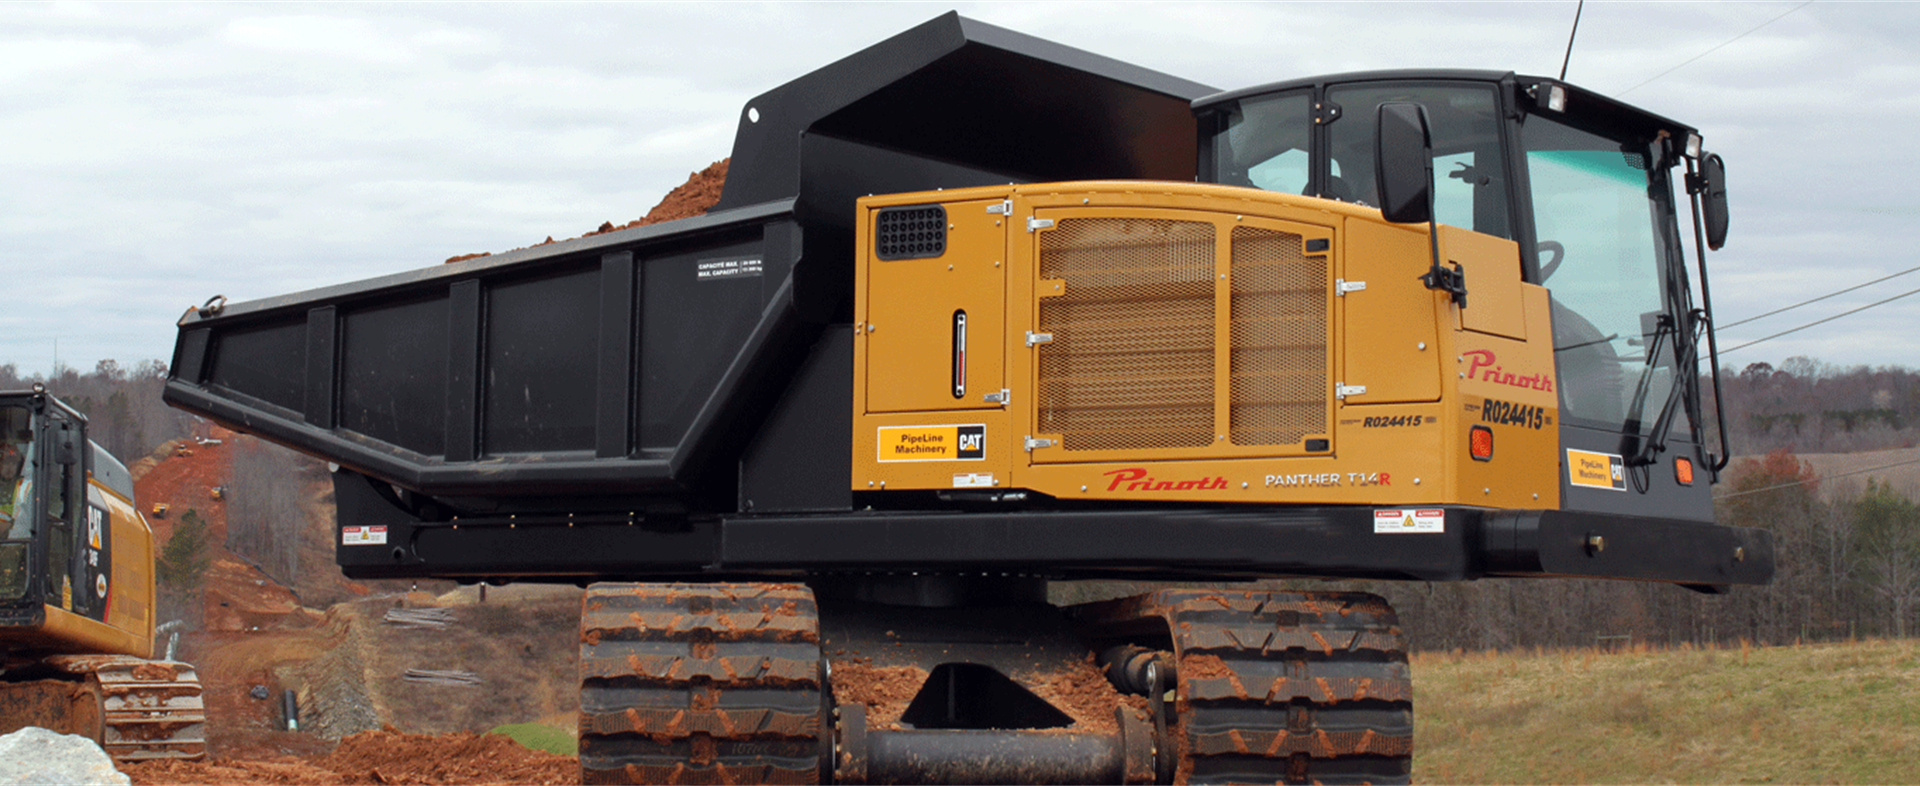 Panther T14R Carrier by Caterpillar - Pipeline Construction